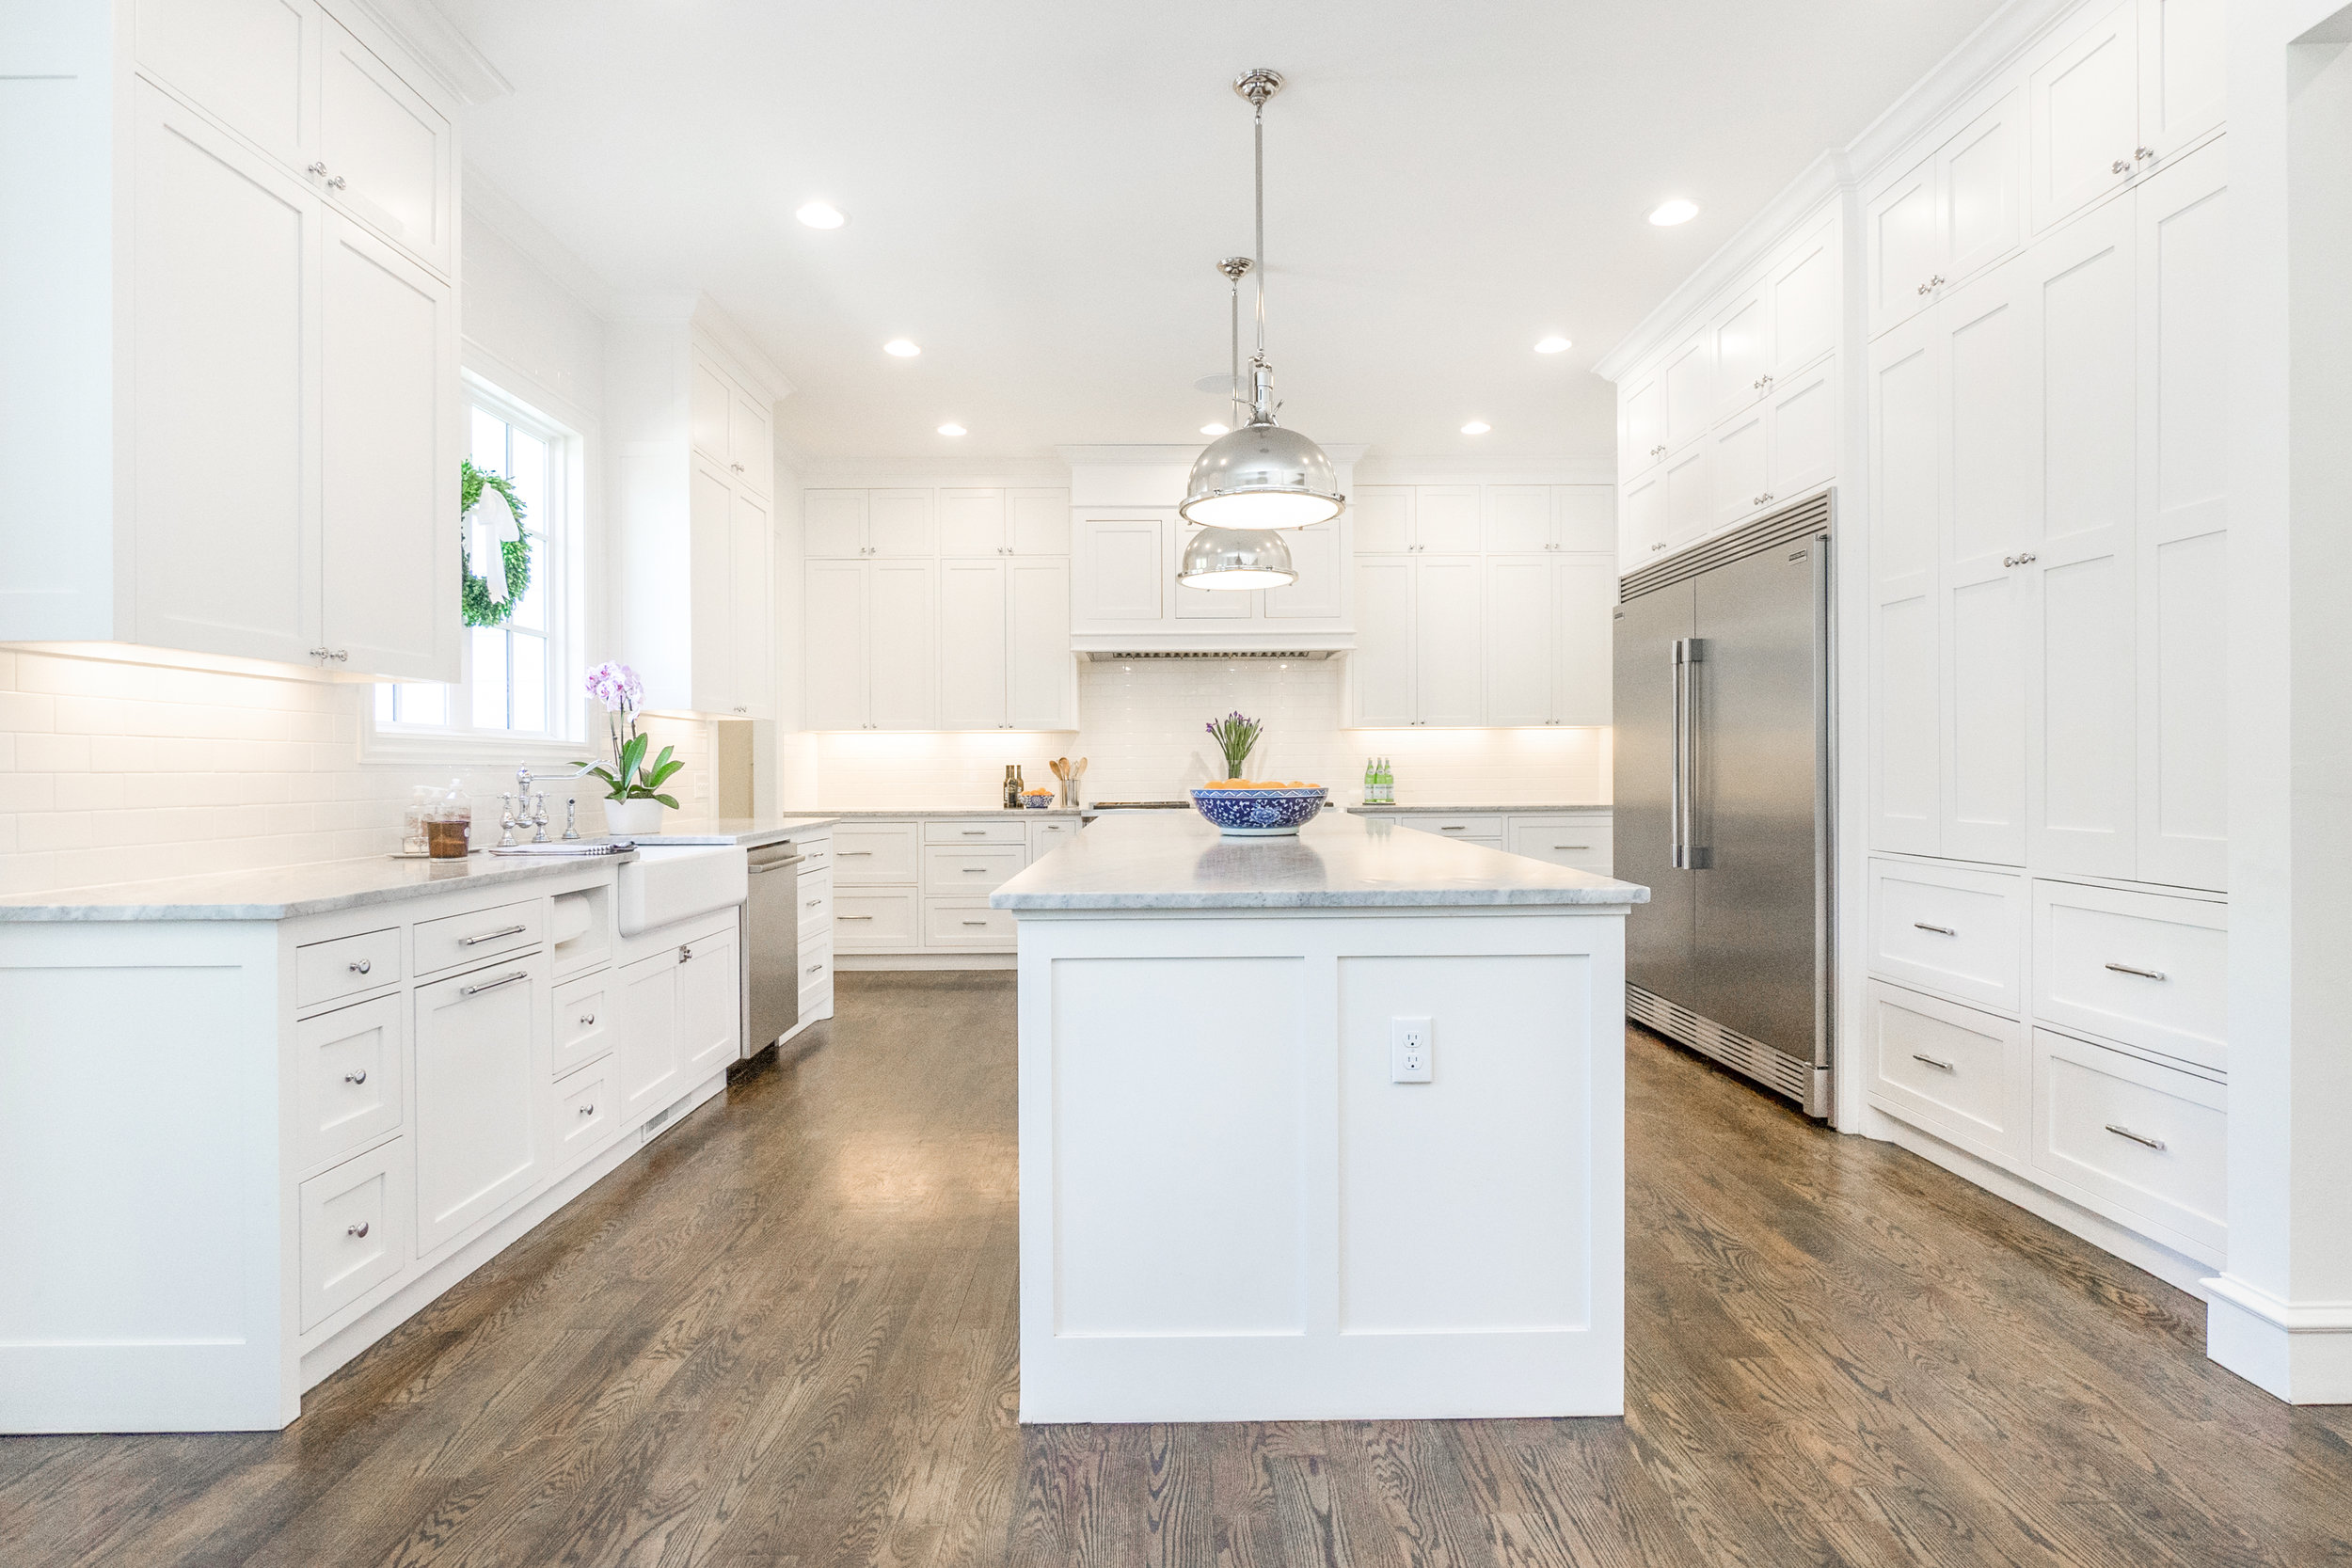 What a wonderful working kitchen! A place for everything! The tall cabinets on the right open for a work center. Small appliances and measuring items—all at your fingertips.